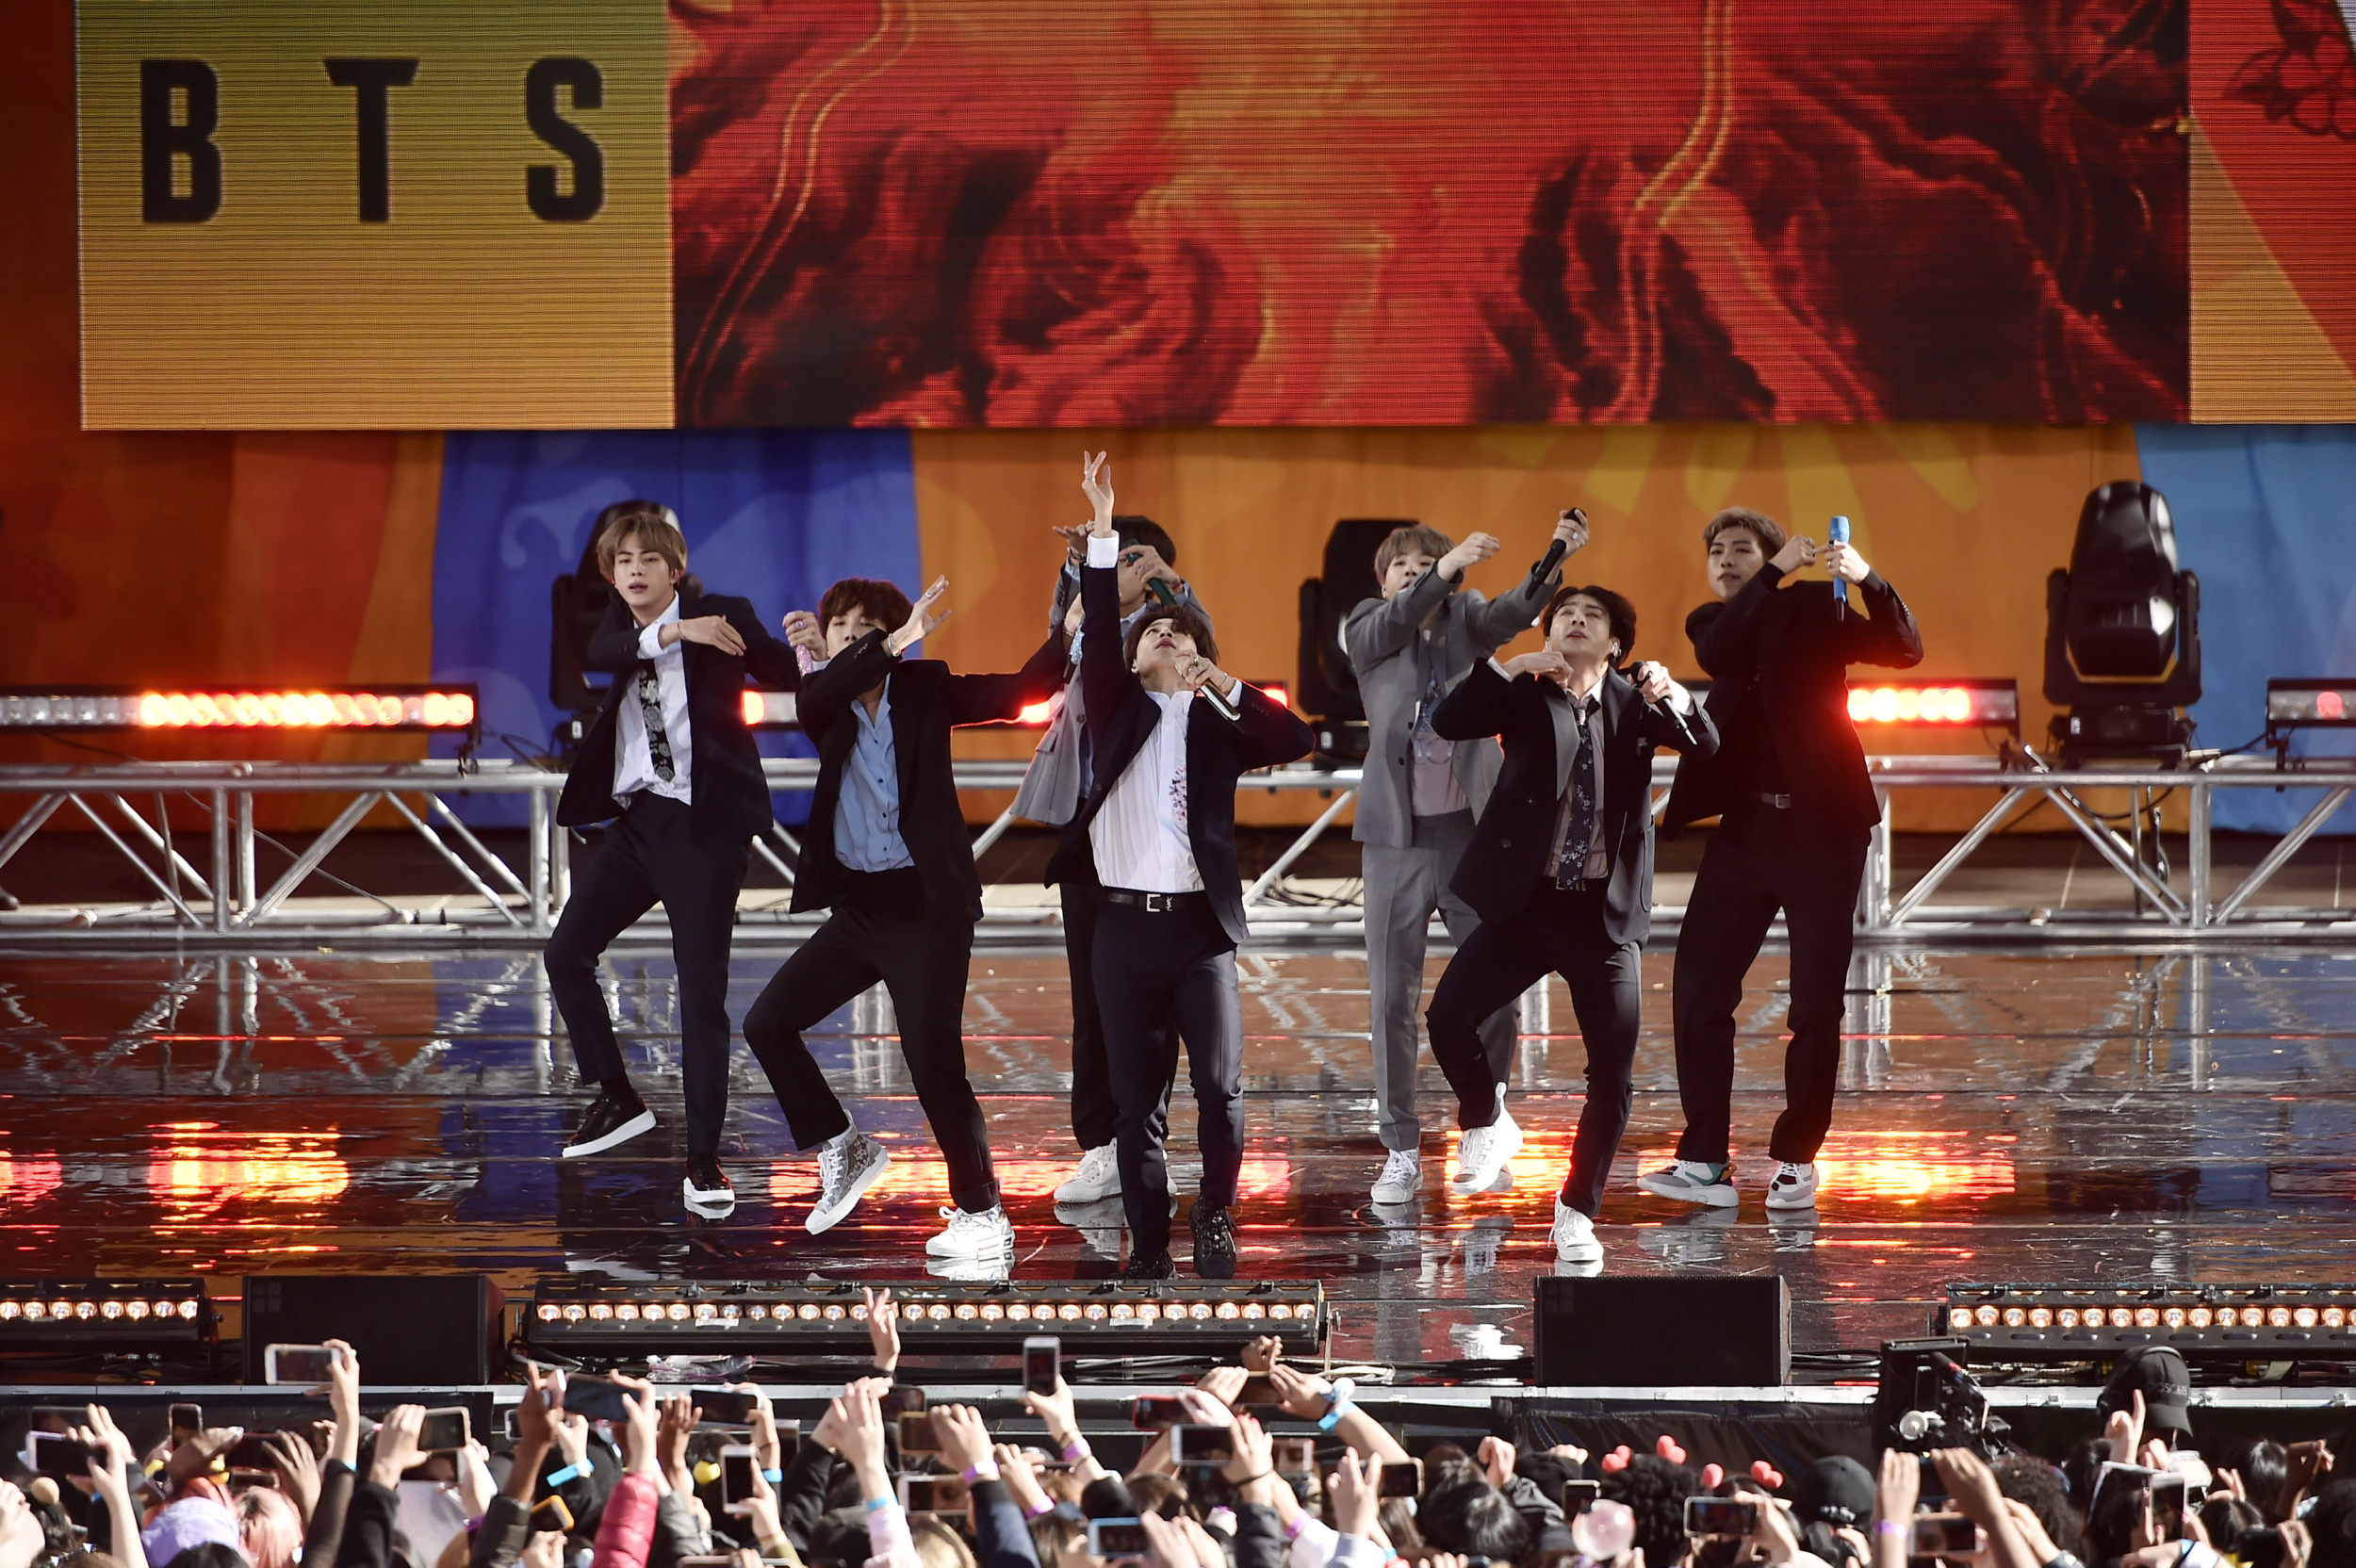 BTS- The first foreign artists to play solo show at Saudi Arabia's King FI Stadium